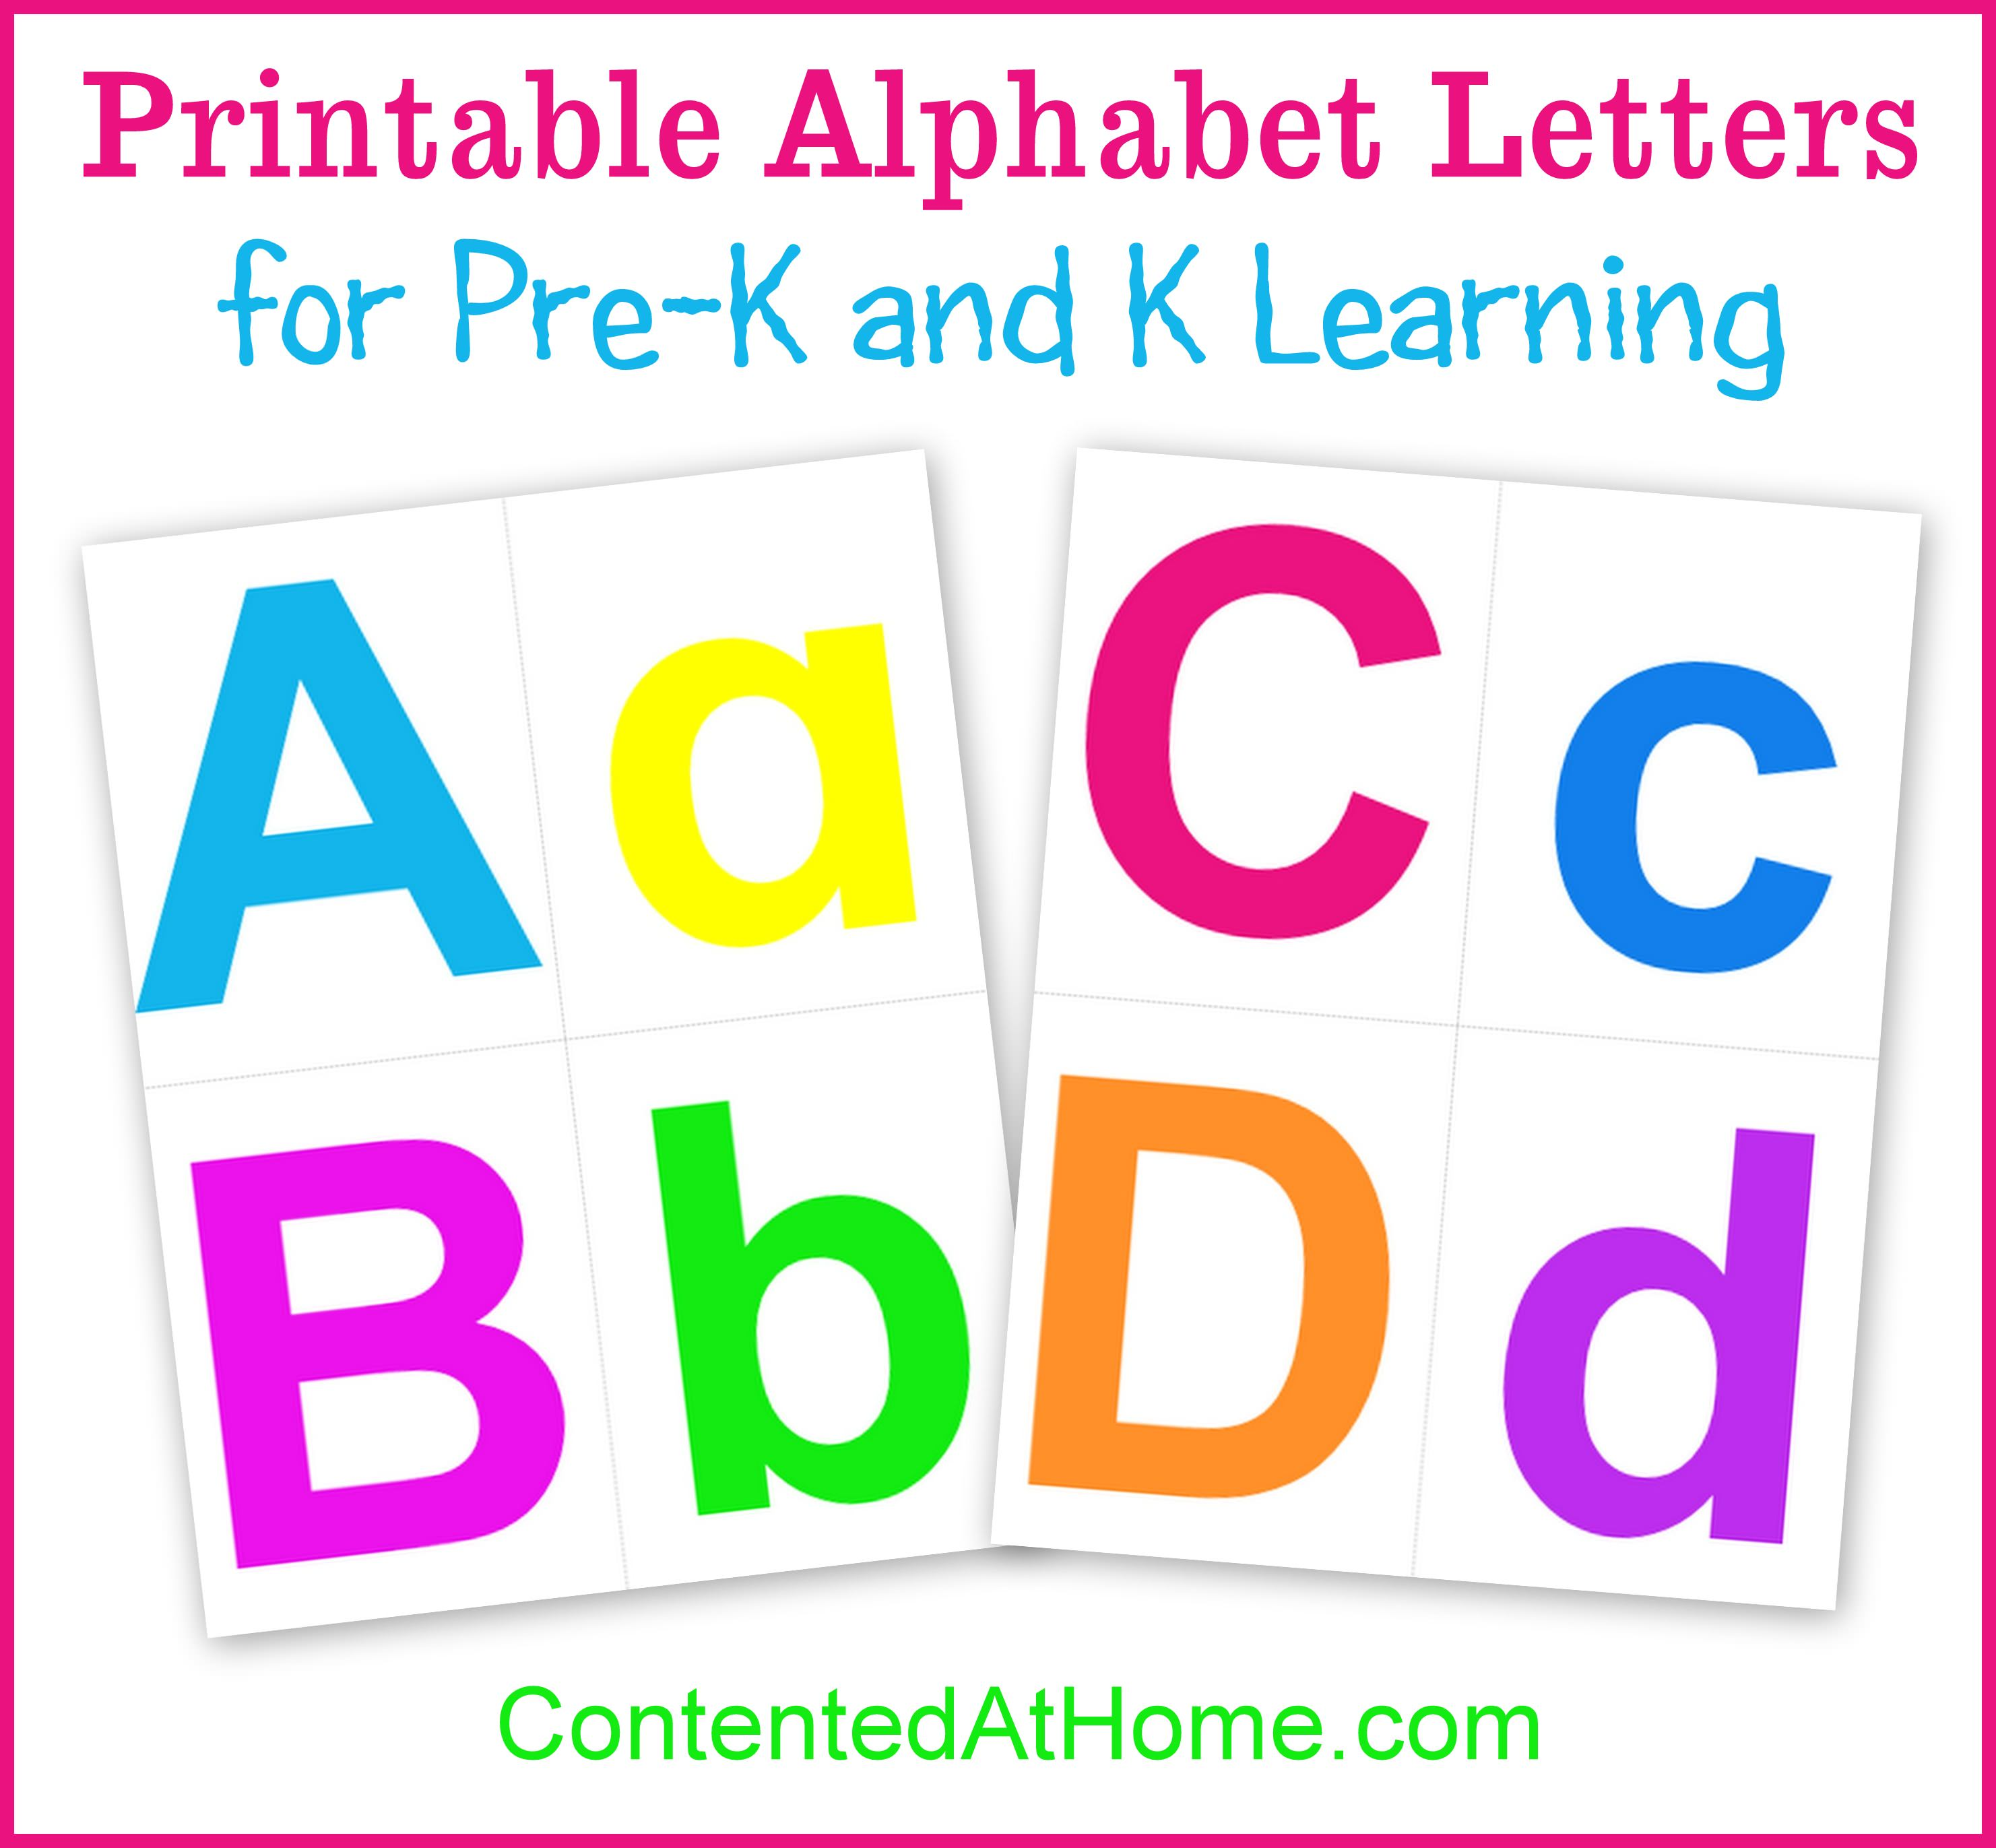 printable alphabet letters | contented at home